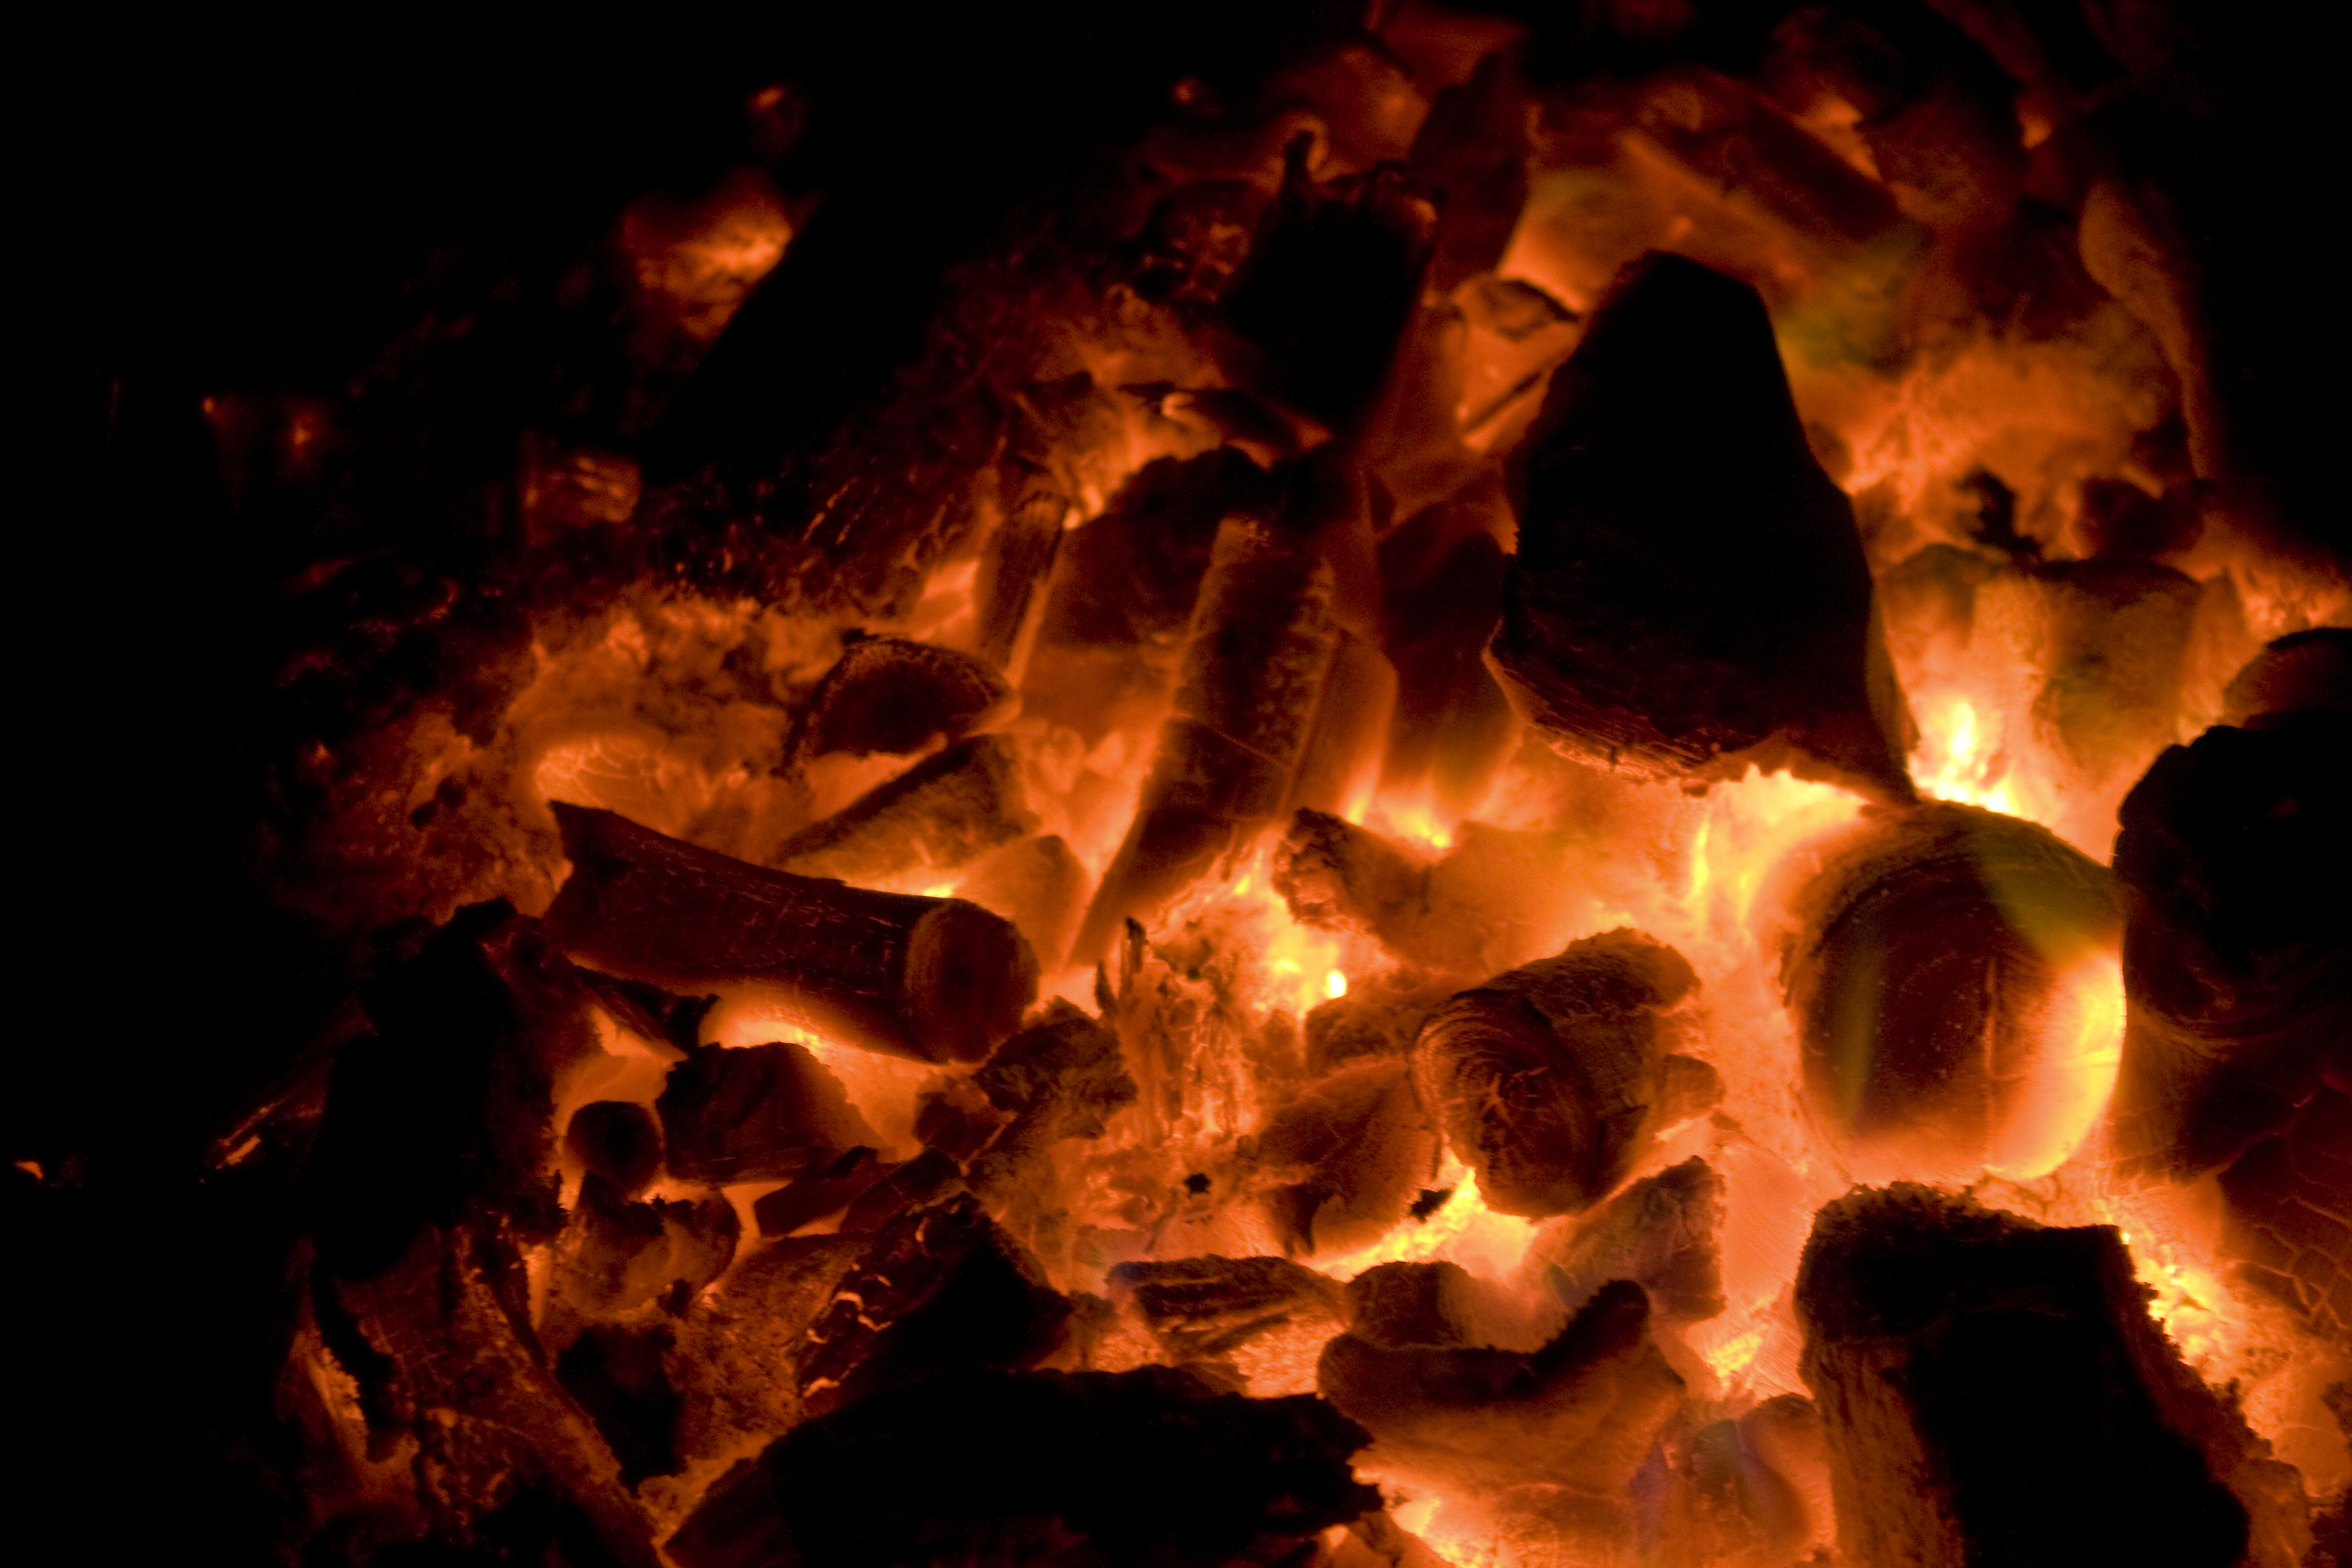 Glowing red hot coals, Hellish, Hot, Heat, Inferno, HQ Photo